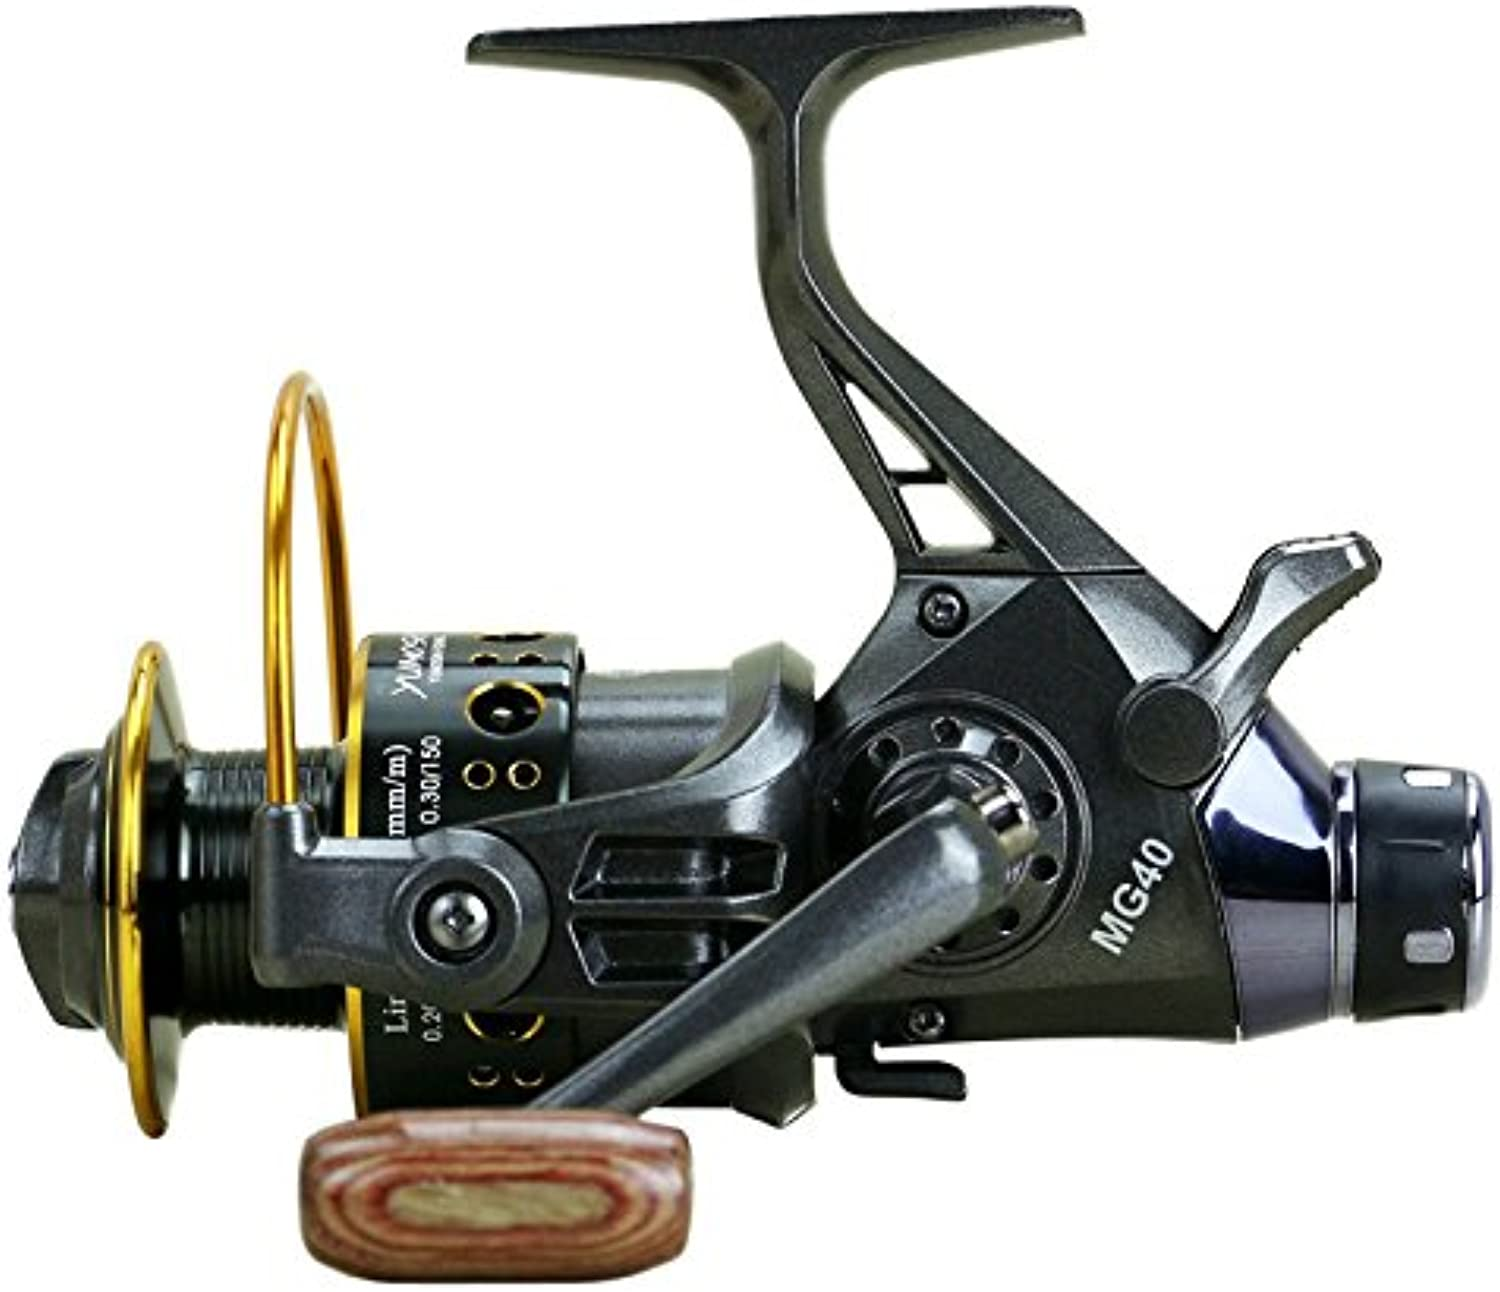 Fishing Reel Spinning Fishing Reel Left Right Interchangeable Handle for Fishing Gear Ratio 5.0 1 with Double Drag Brake System for Bait Fishing Action (Size   6000)